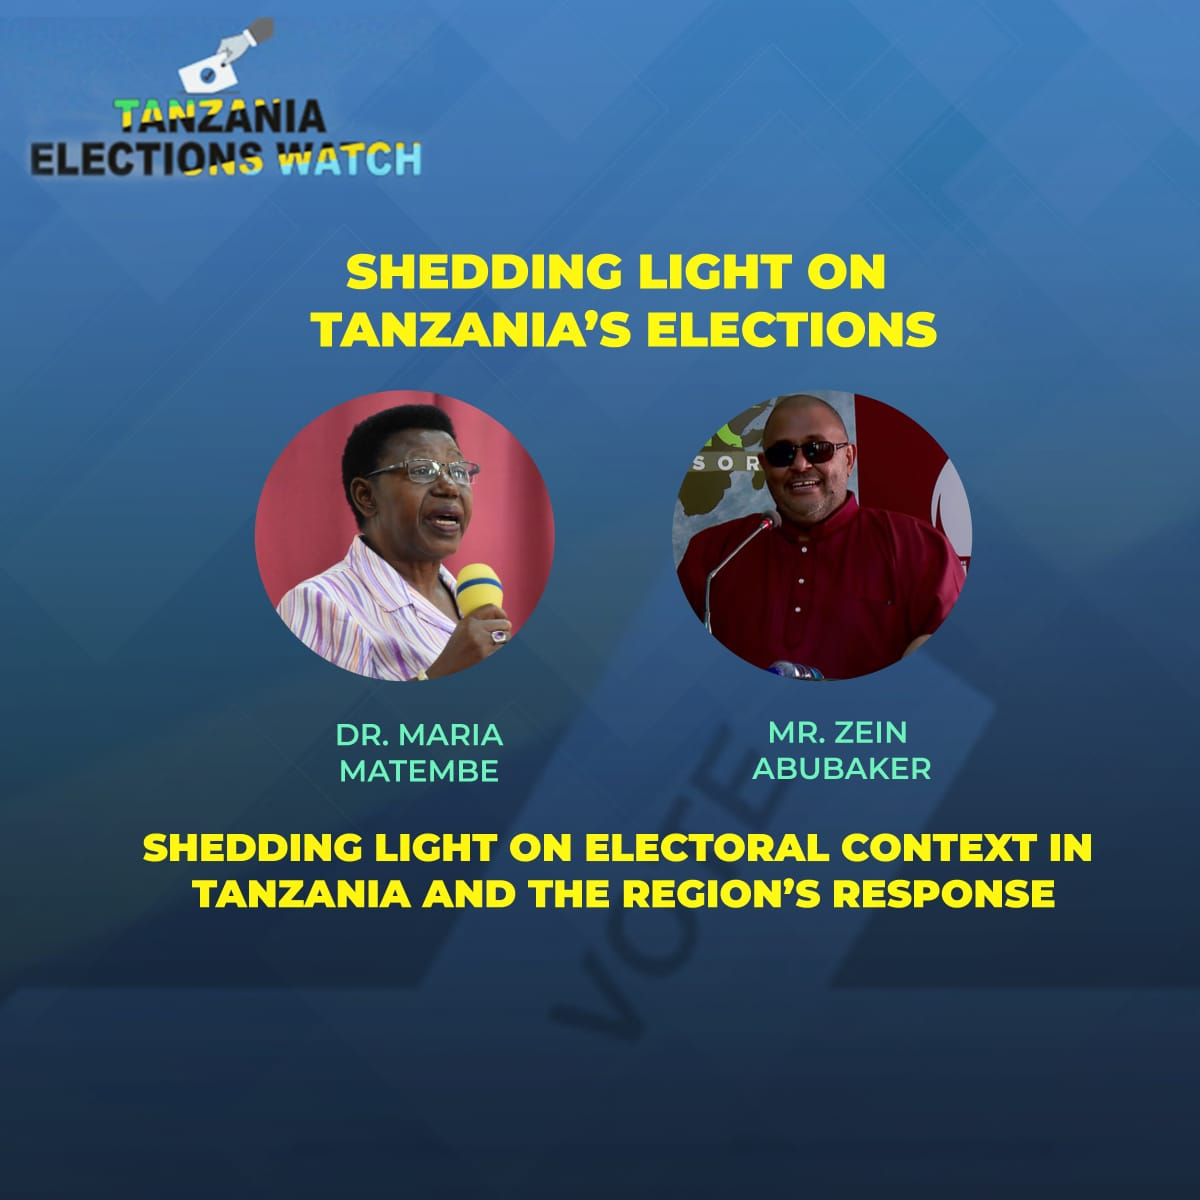 Zein Abubakar and Miriam Matembe on electoral context in Tanzania and the region's response